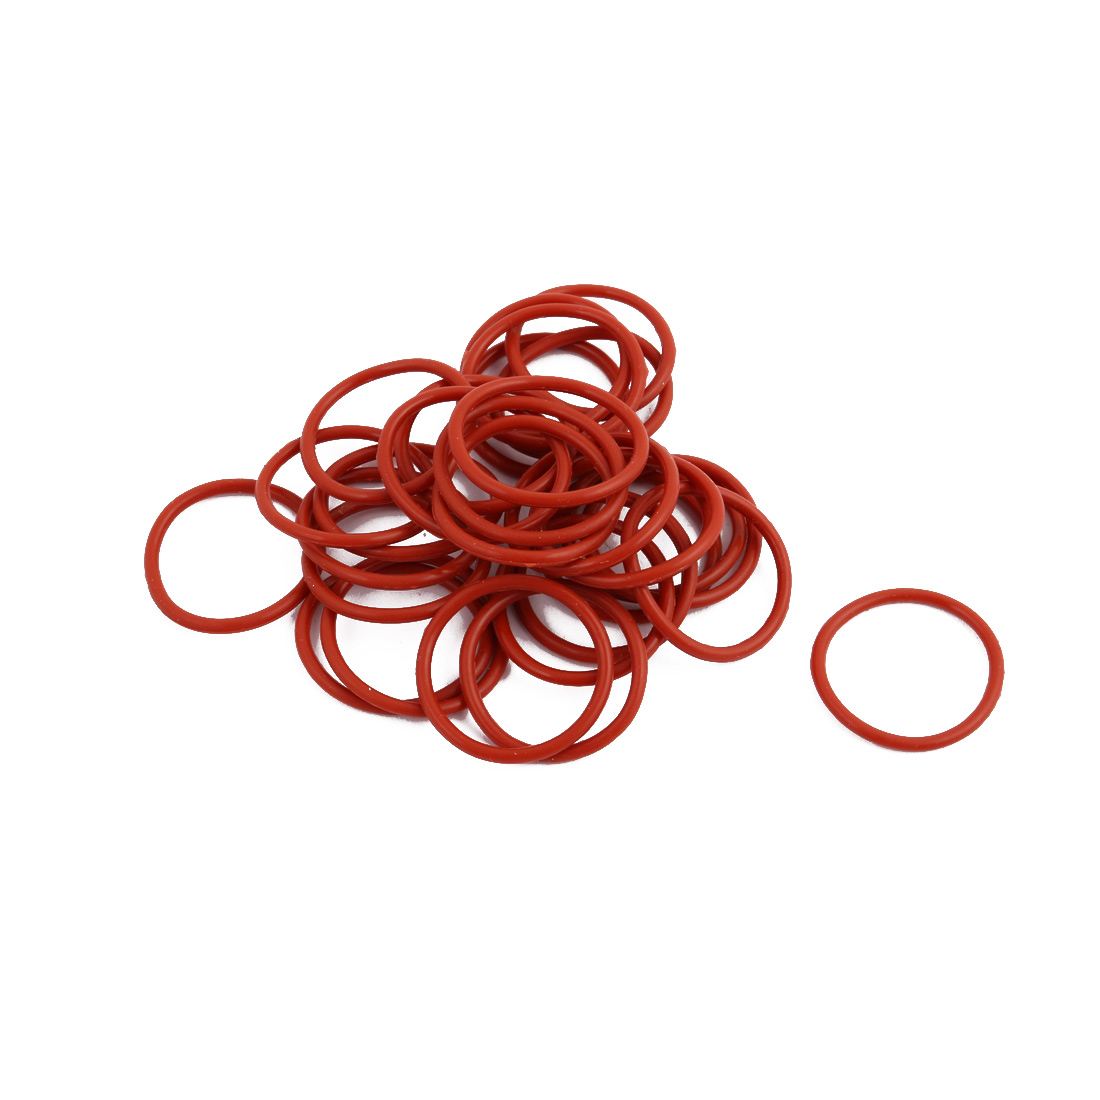 30pcs Red Round Nitrile Butadiene Rubber NBR O-Ring 24mm OD 1.9mm Width